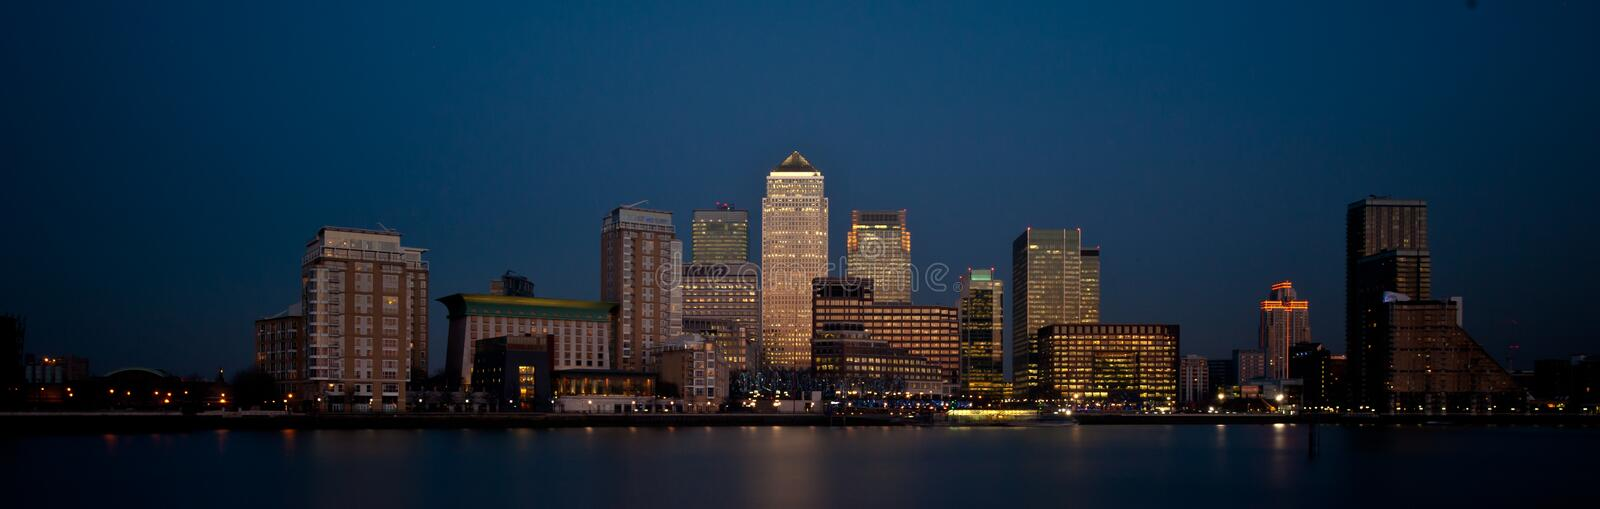 Download London Financial District Panoramic Skyline 2013 At Dusk Stock Image - Image: 29341211